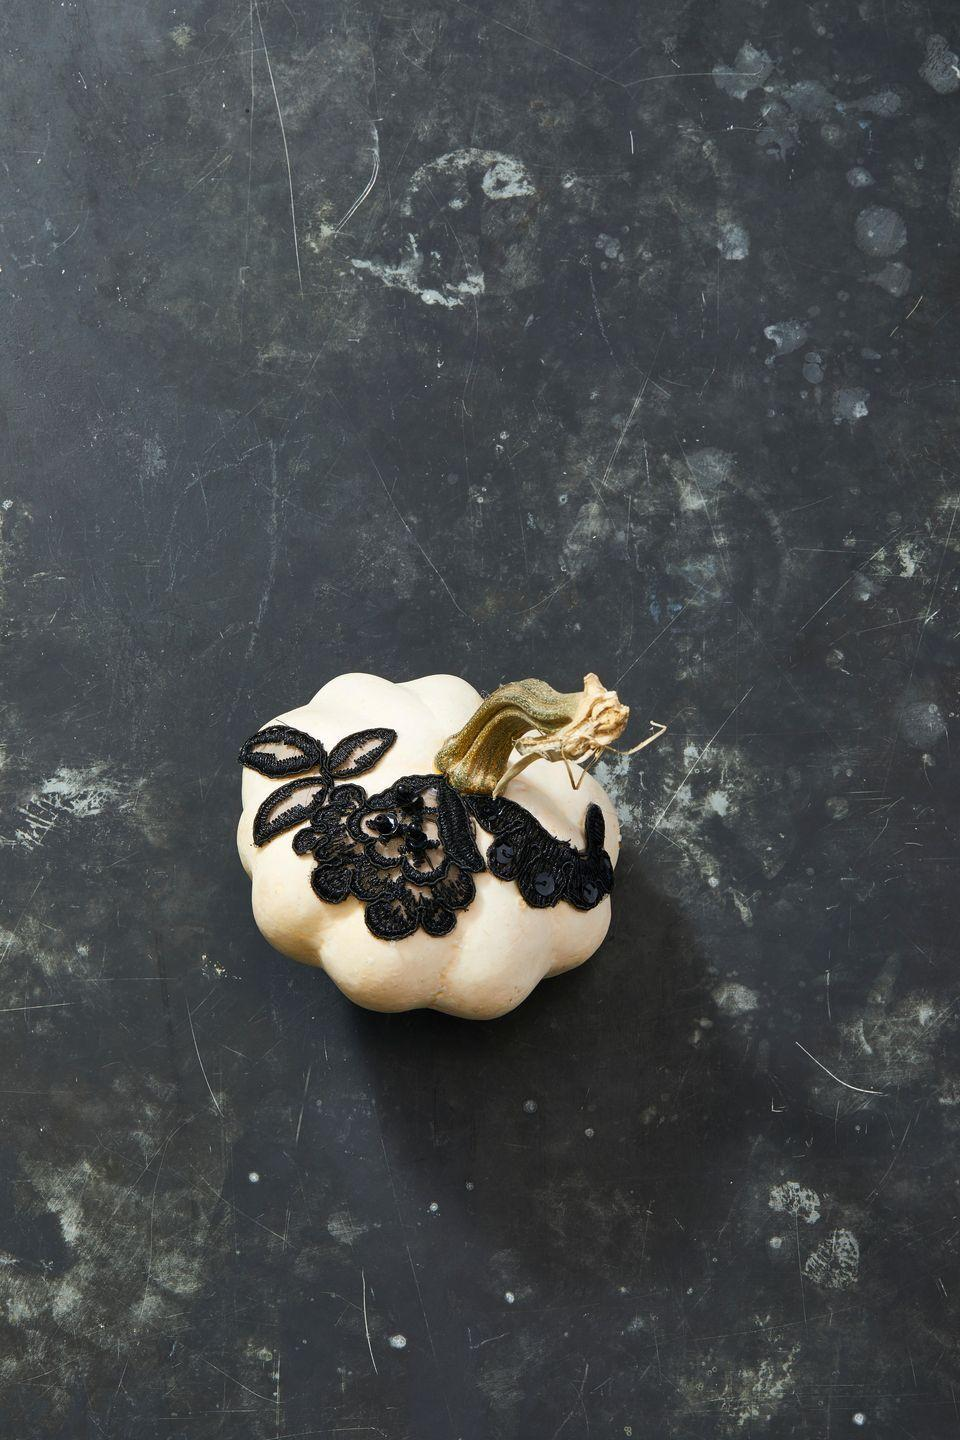 <p>Fabric trimmings and appliqués from craft stores make perfect, easy decoration for your pumpkins! Paint the pumpkin to match your home's aesthetic, then use a hot glue gun to attach the trimmings. </p>